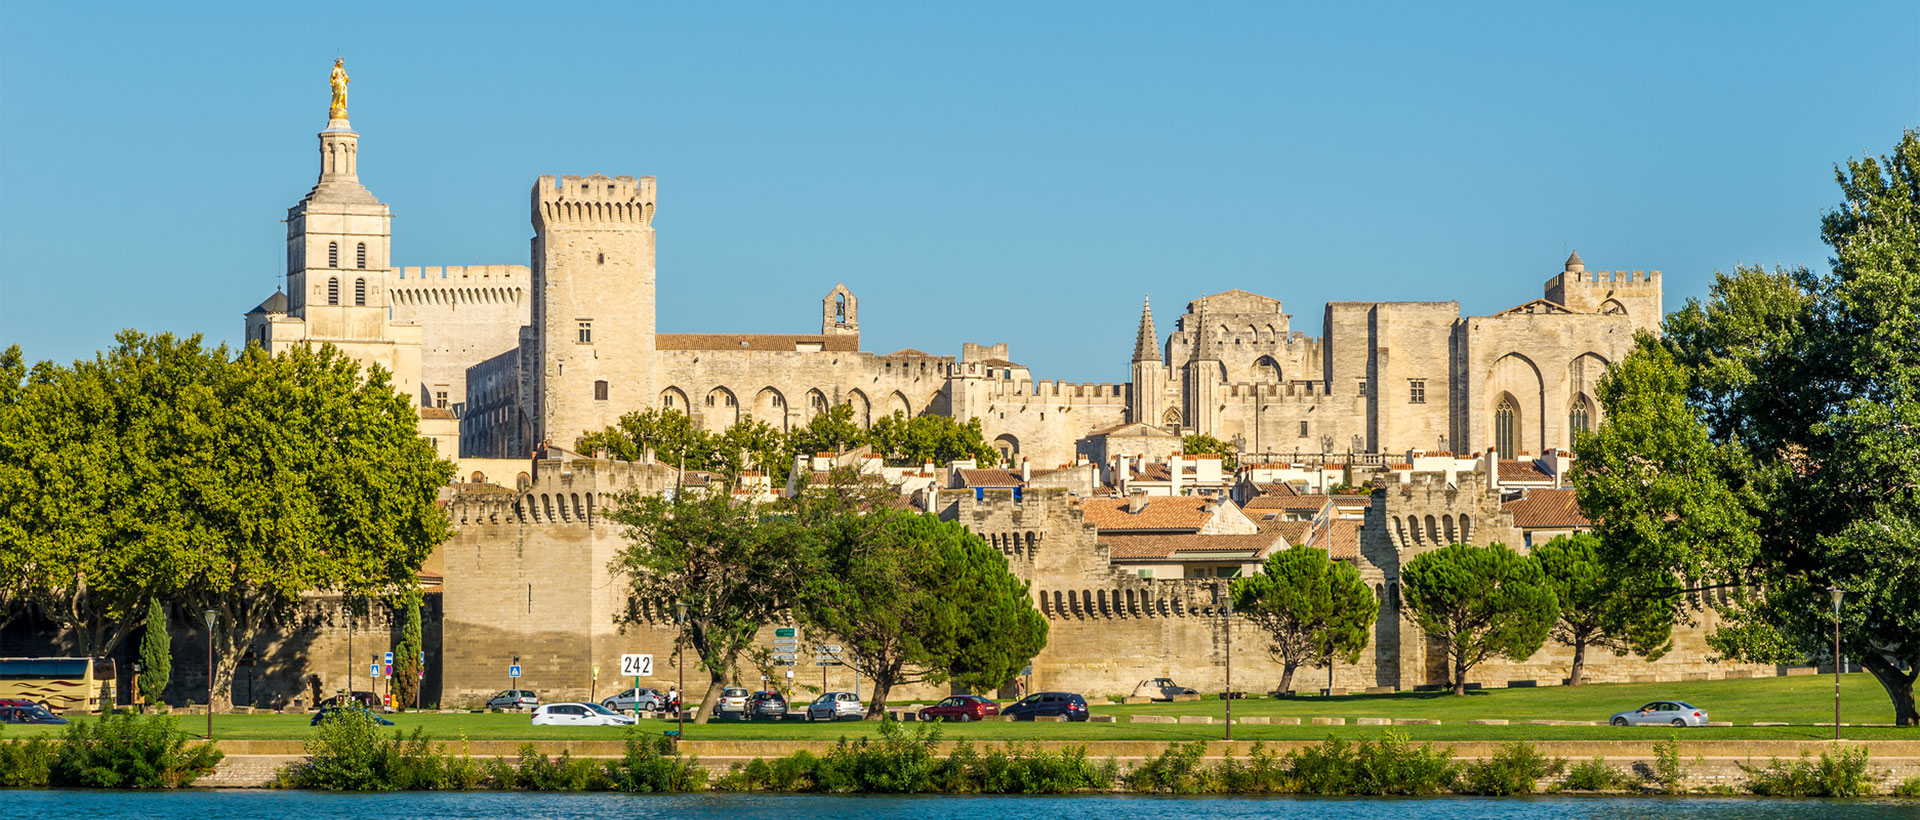 https://cdn.flixbus.de/d7files/hi_res_images/header/4018_avignon.jpg